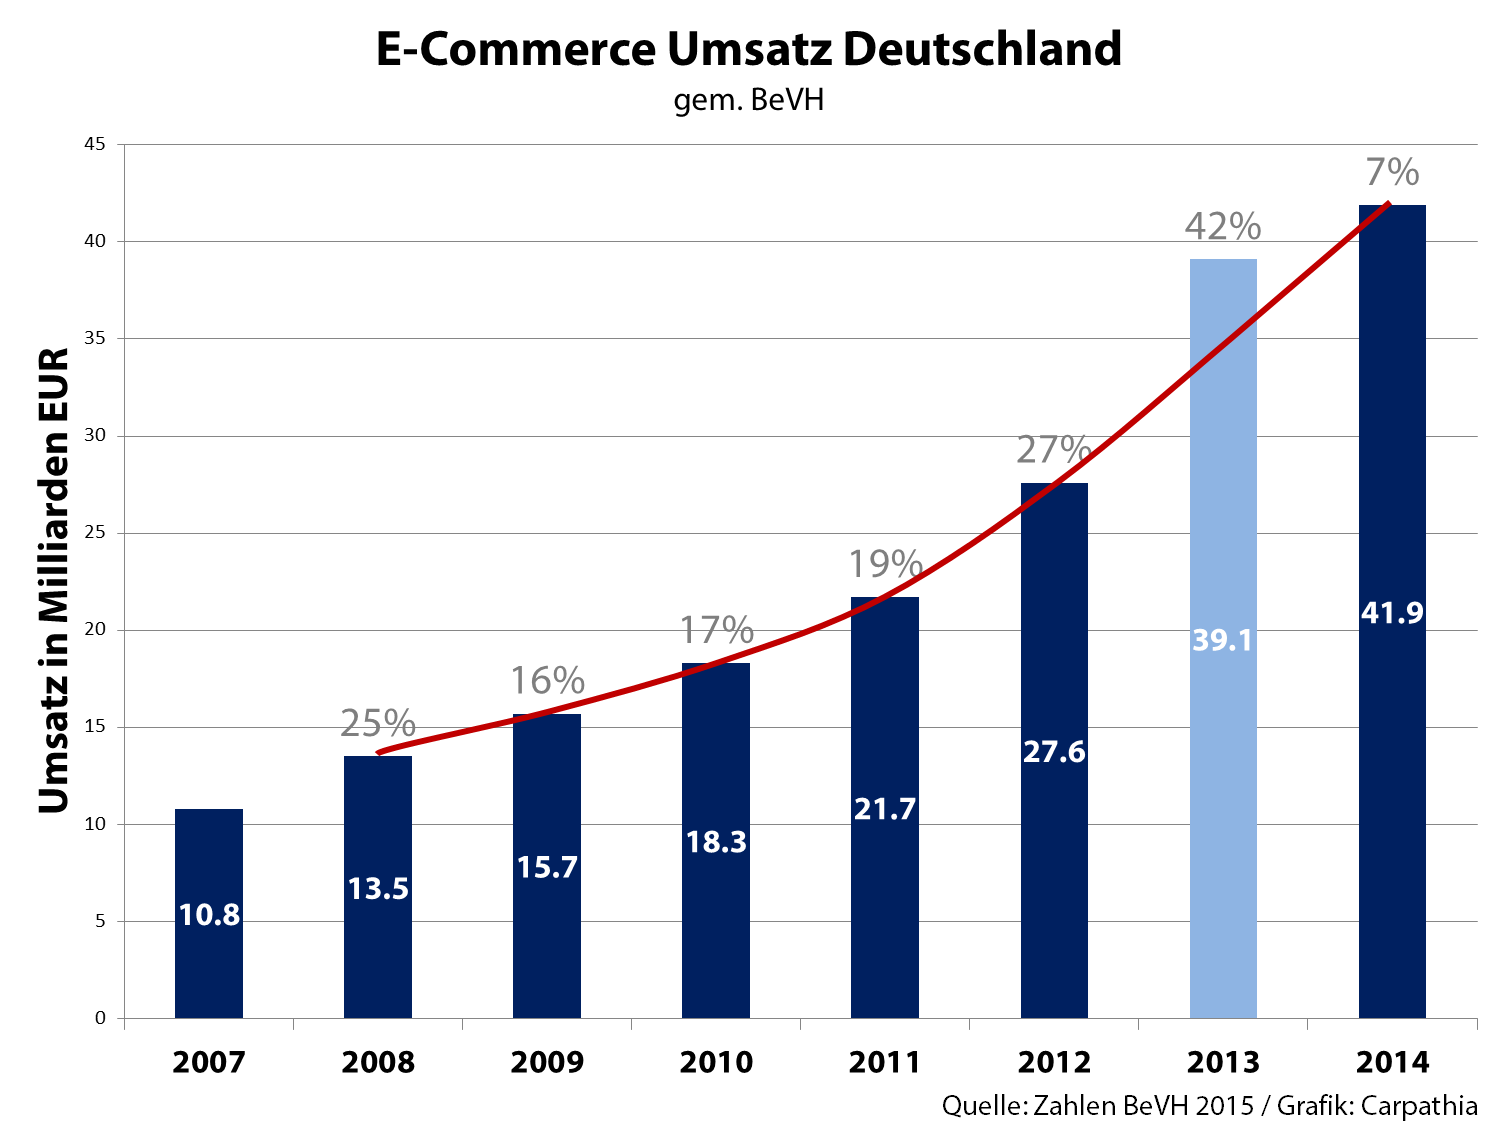 E-Commerce Umsatz Deutschland - Quelle: BeVH / Grafik: Carpathia